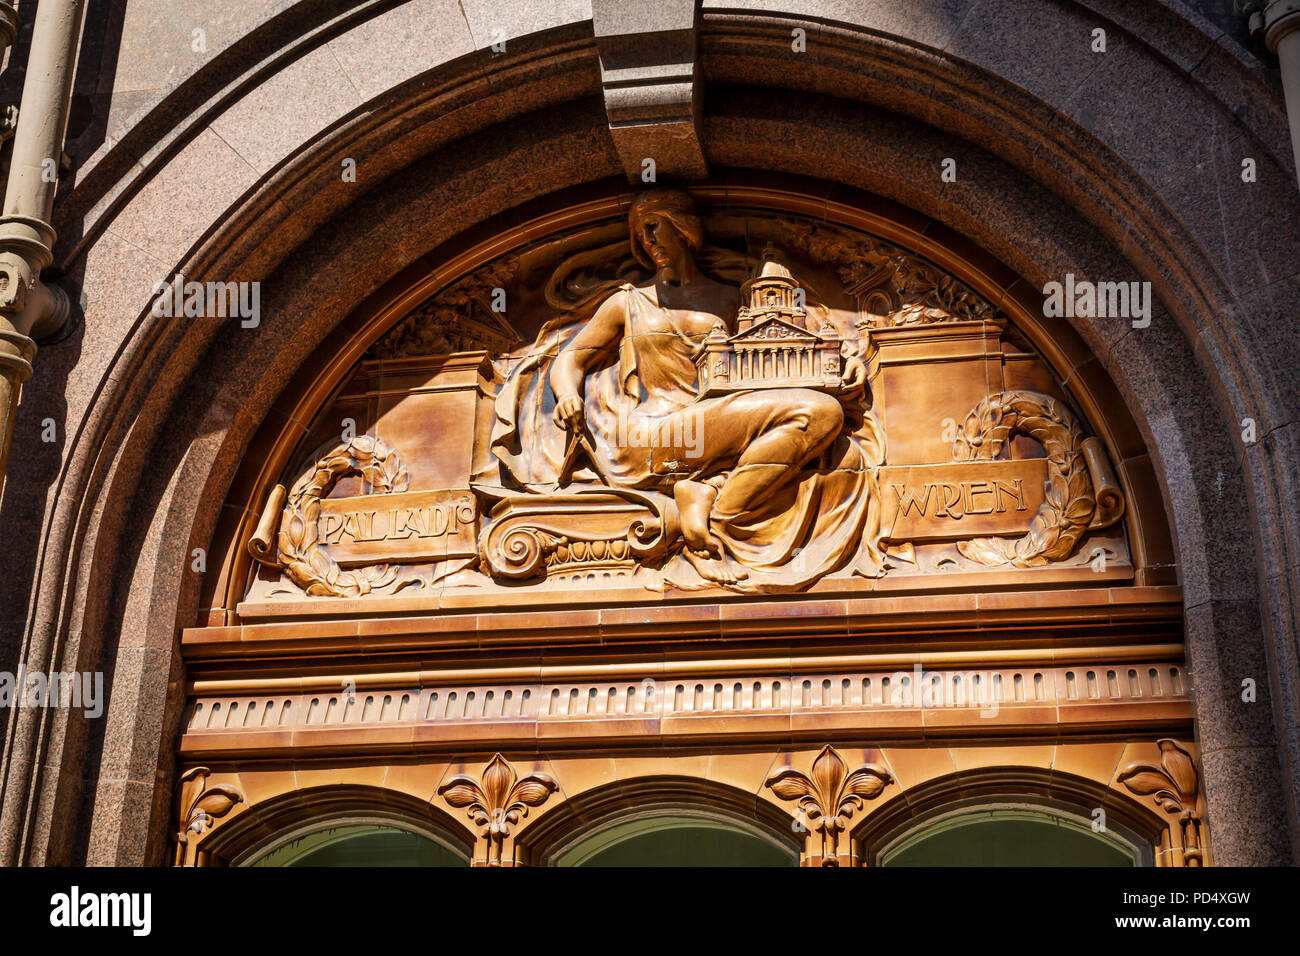 Architectural detail on the Midland Hotel, St Peters Square Manchester. - Stock Image